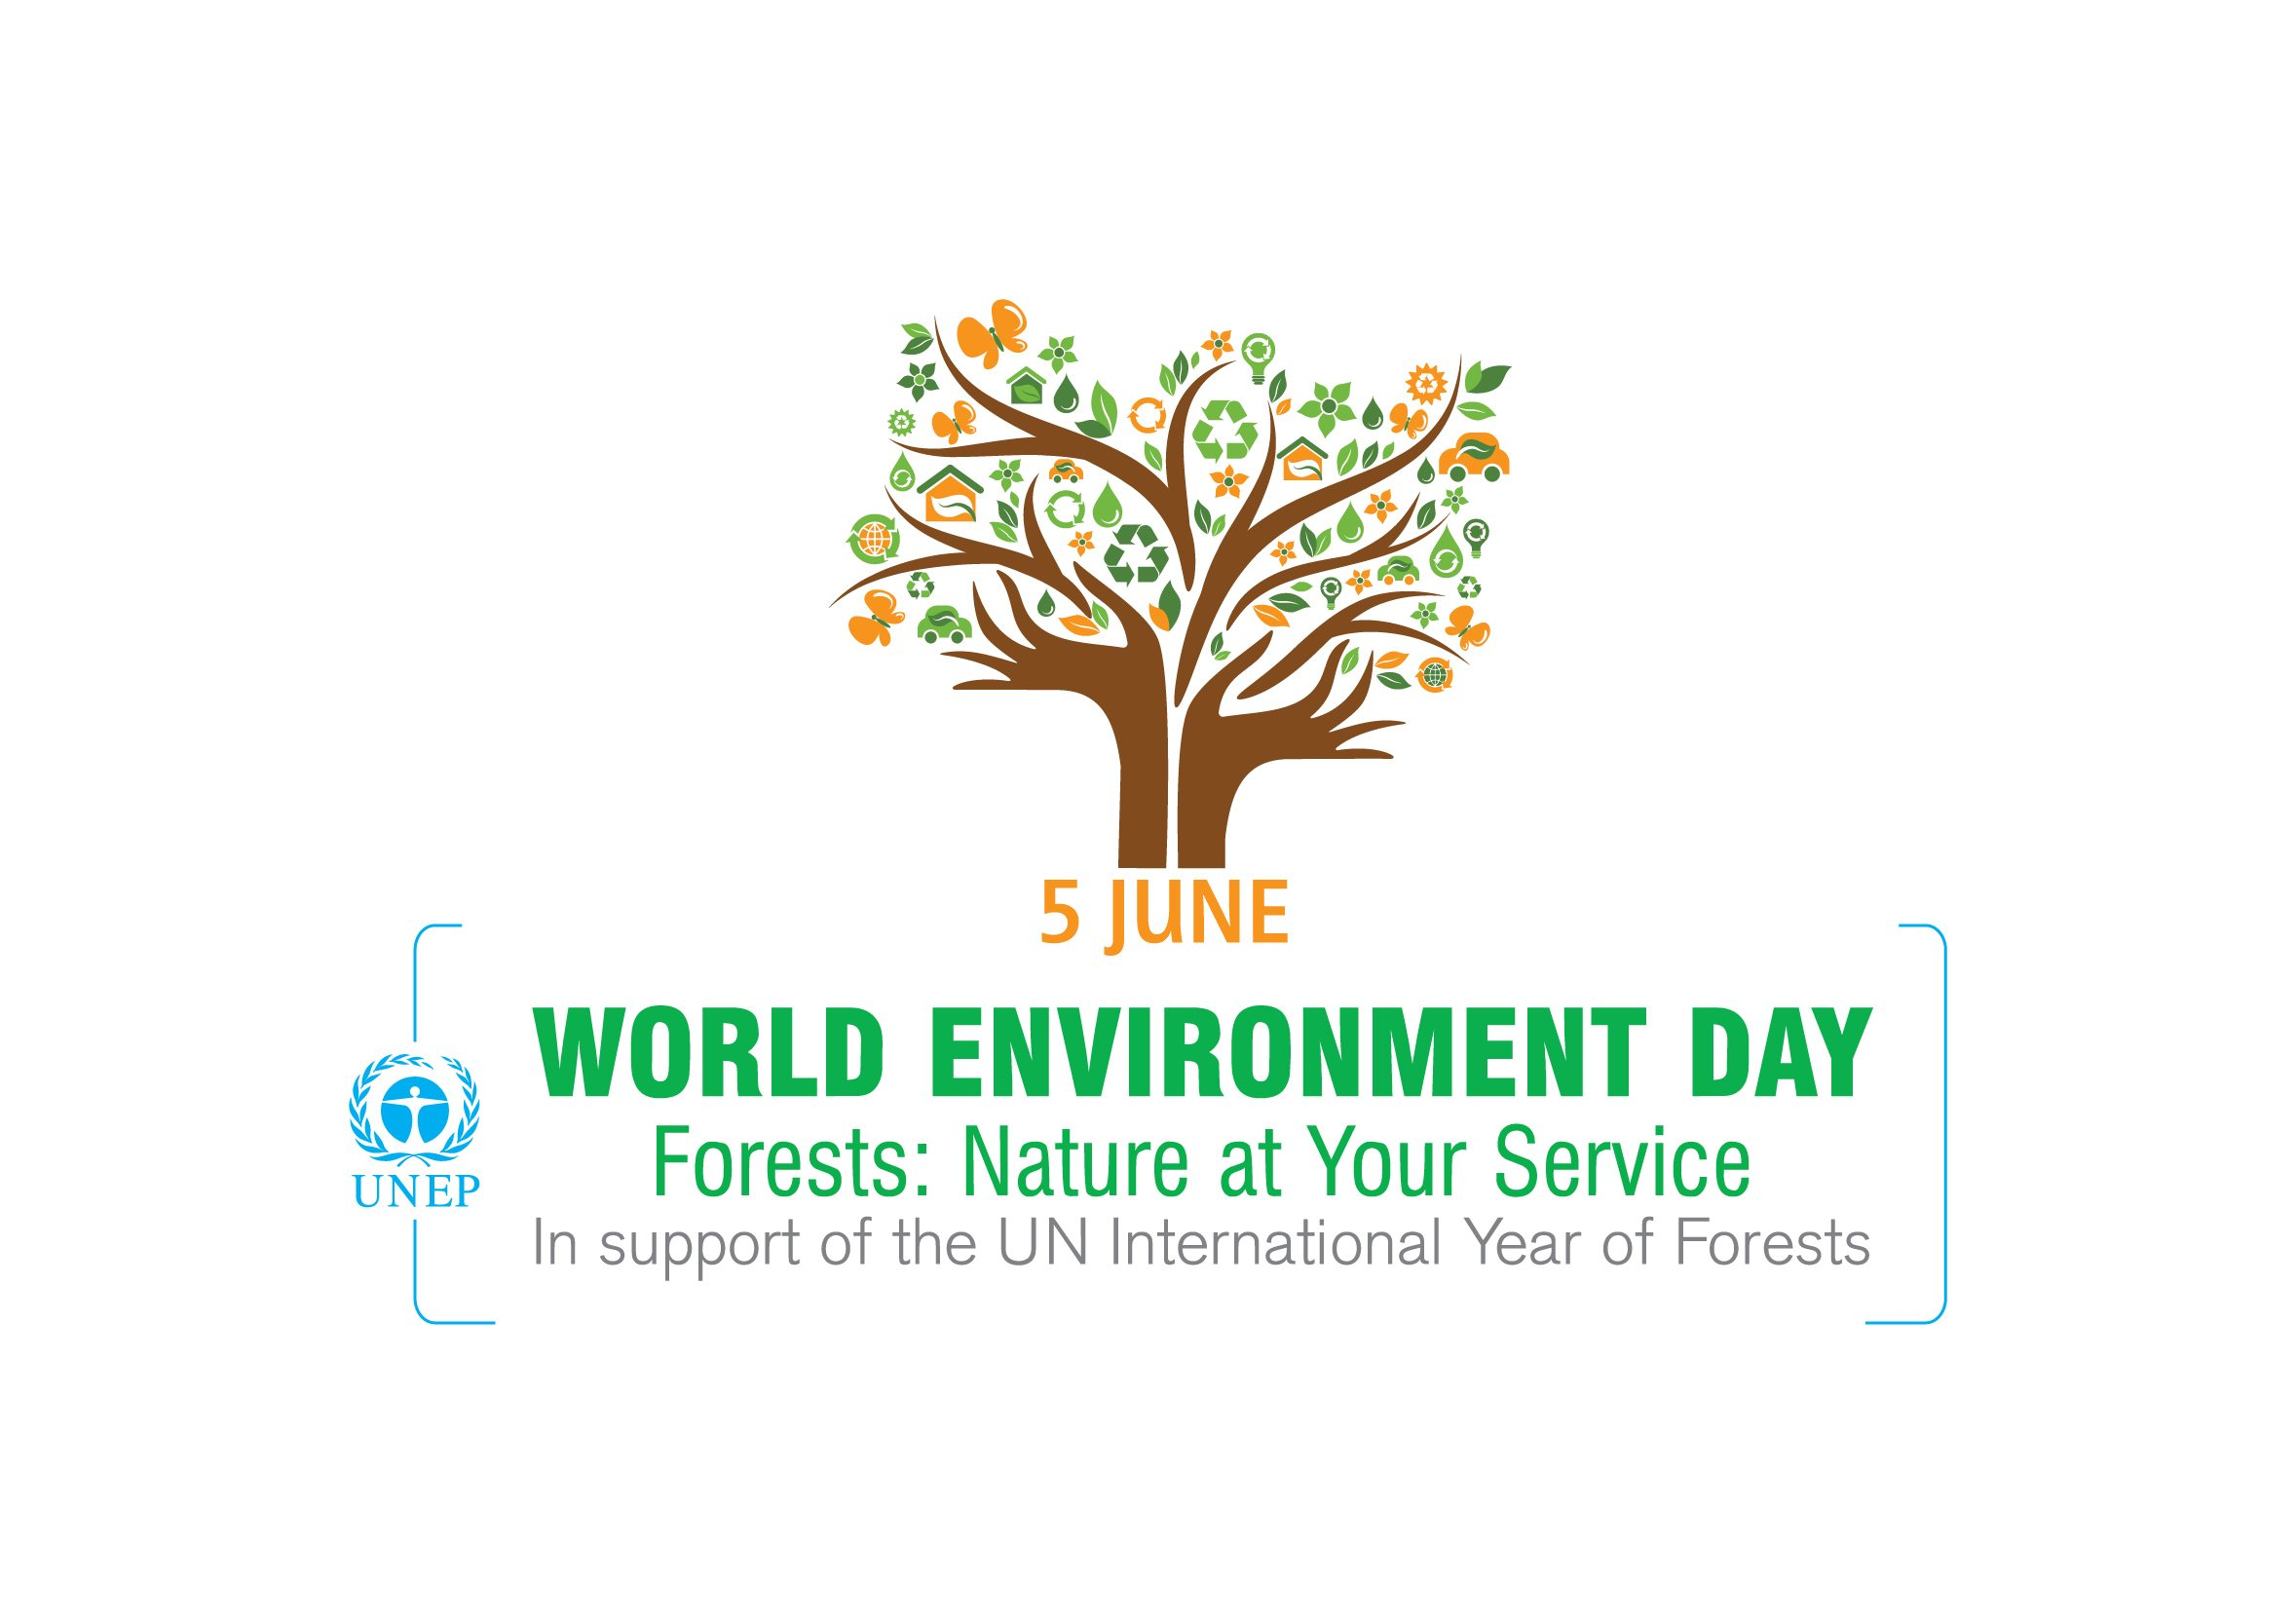 What will you be doing for World Environment Day?